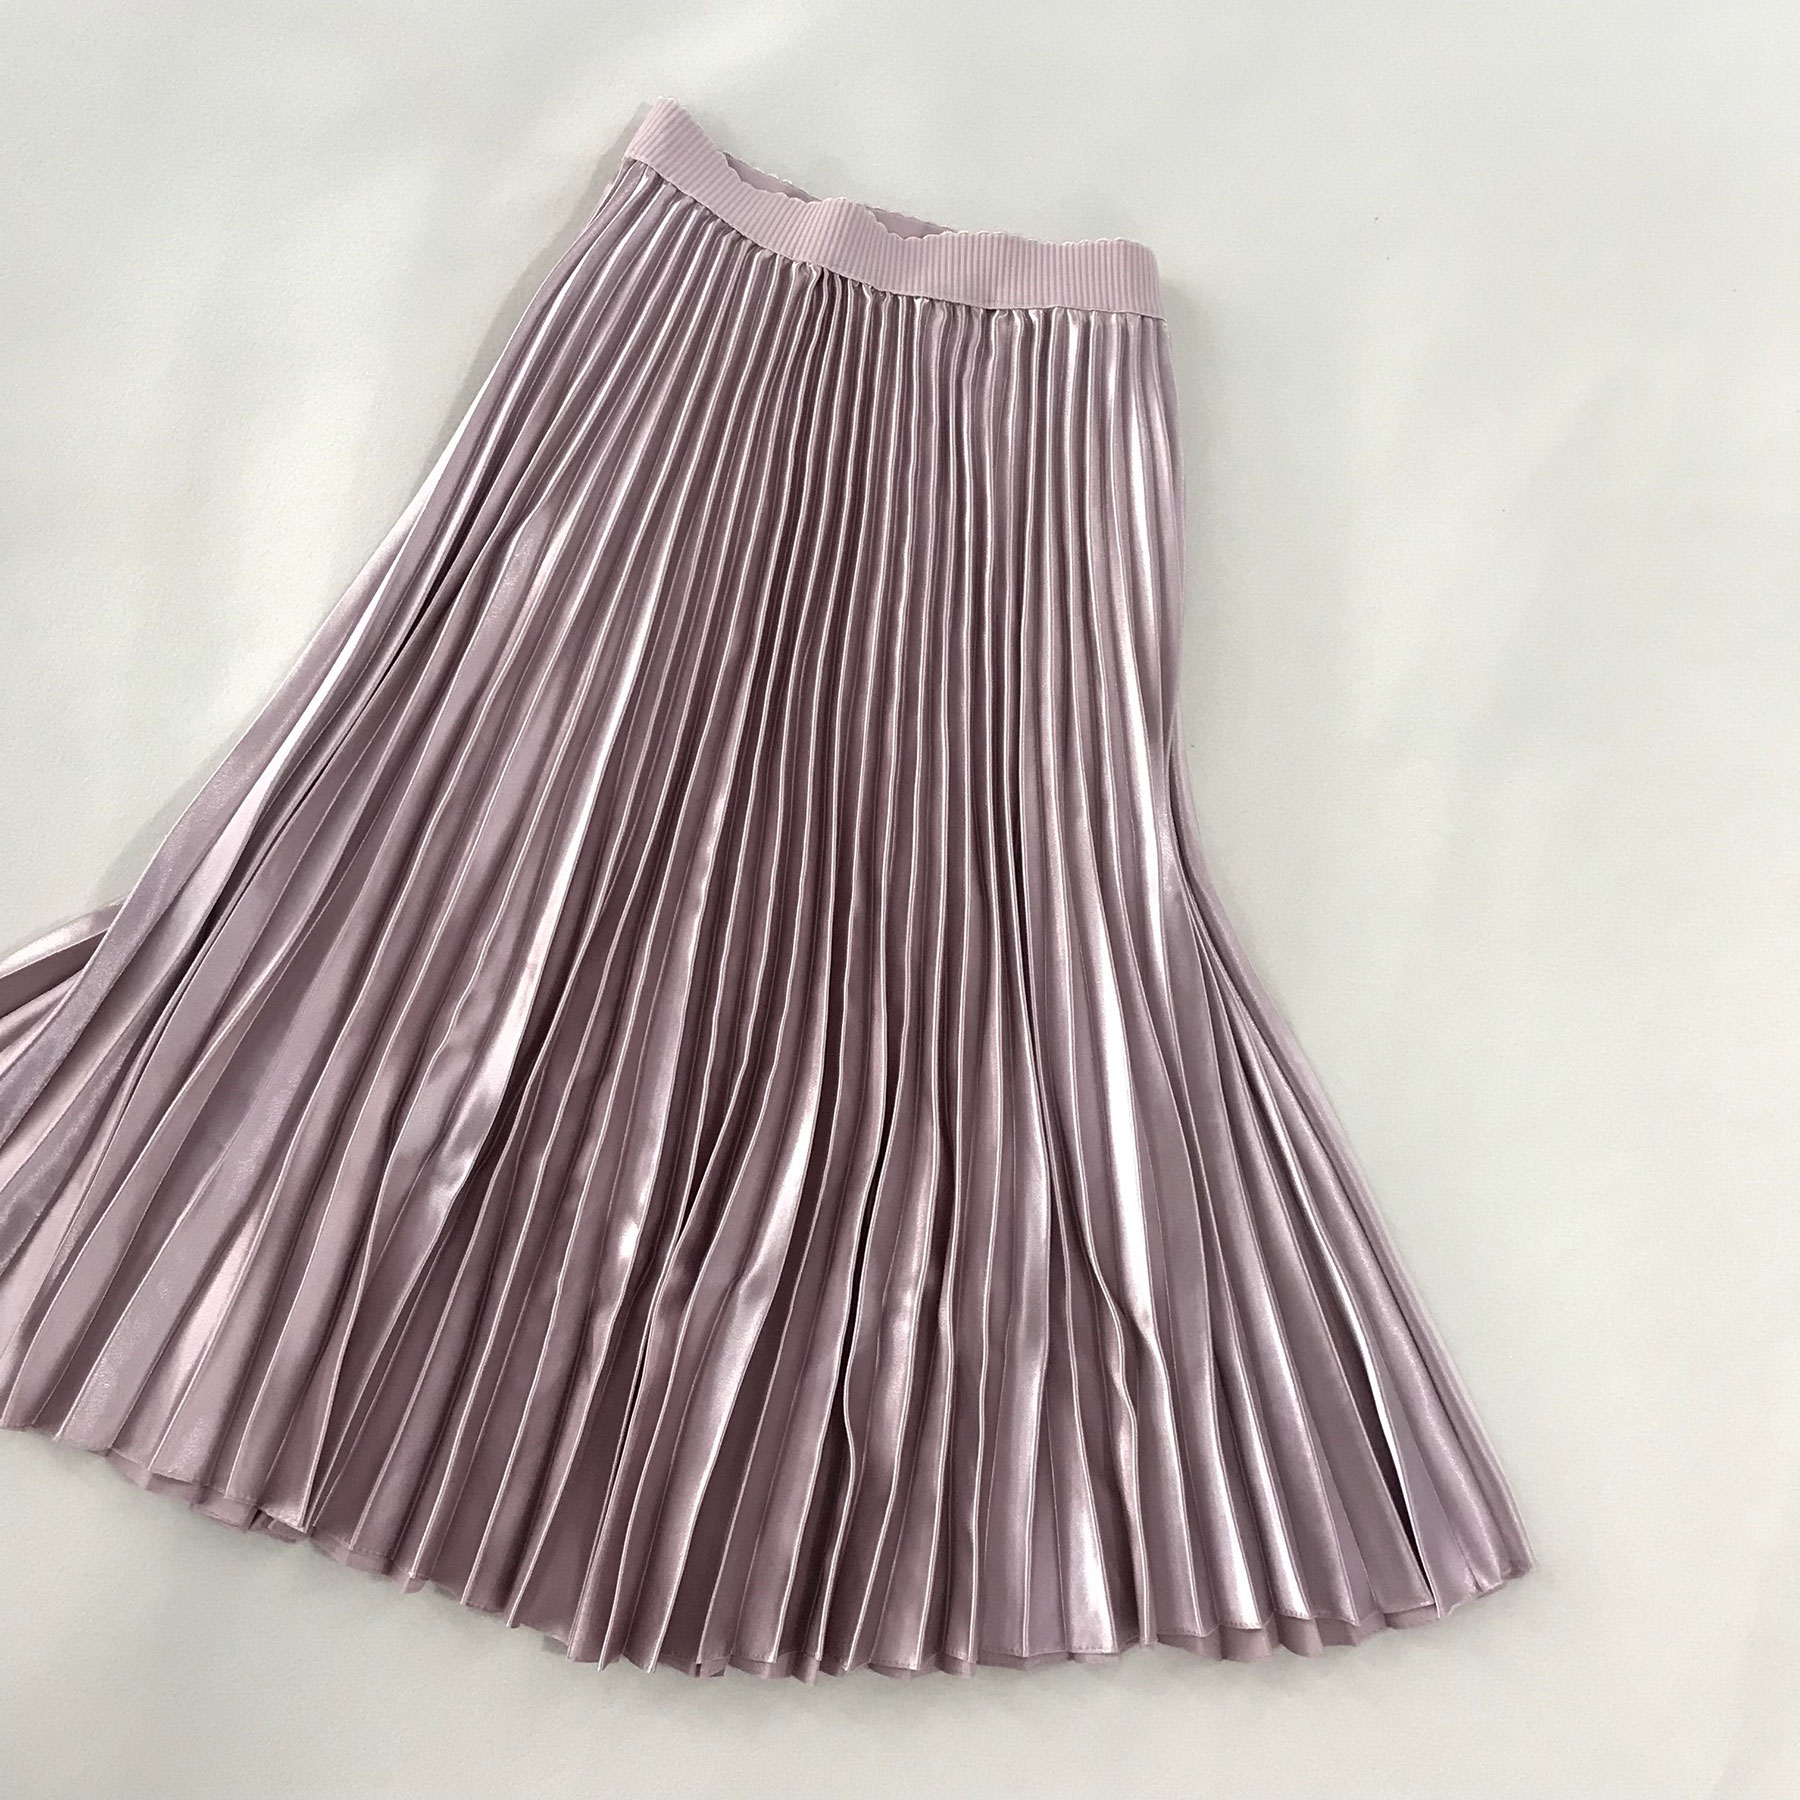 Sherhure 2018 Spring Women Long Skirts Fashion Brand A-Line Women Pleated Skirts High Waist Women Midi Skirt Faldas Mujer Saias 3